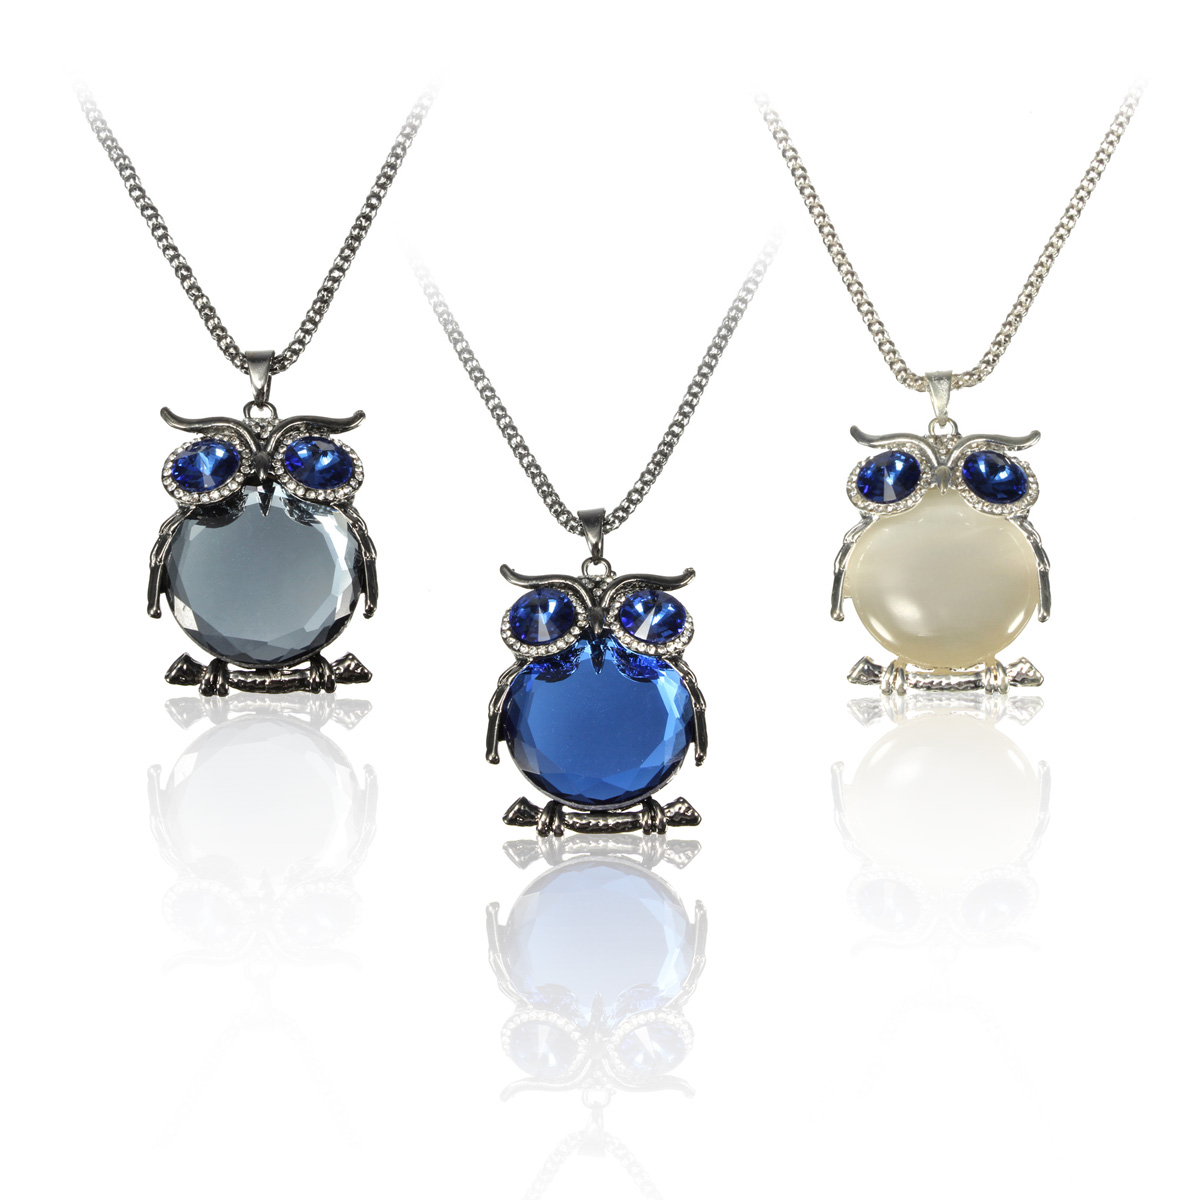 Opal Owl Crystal Pendant Necklace Chain Women Jewelry